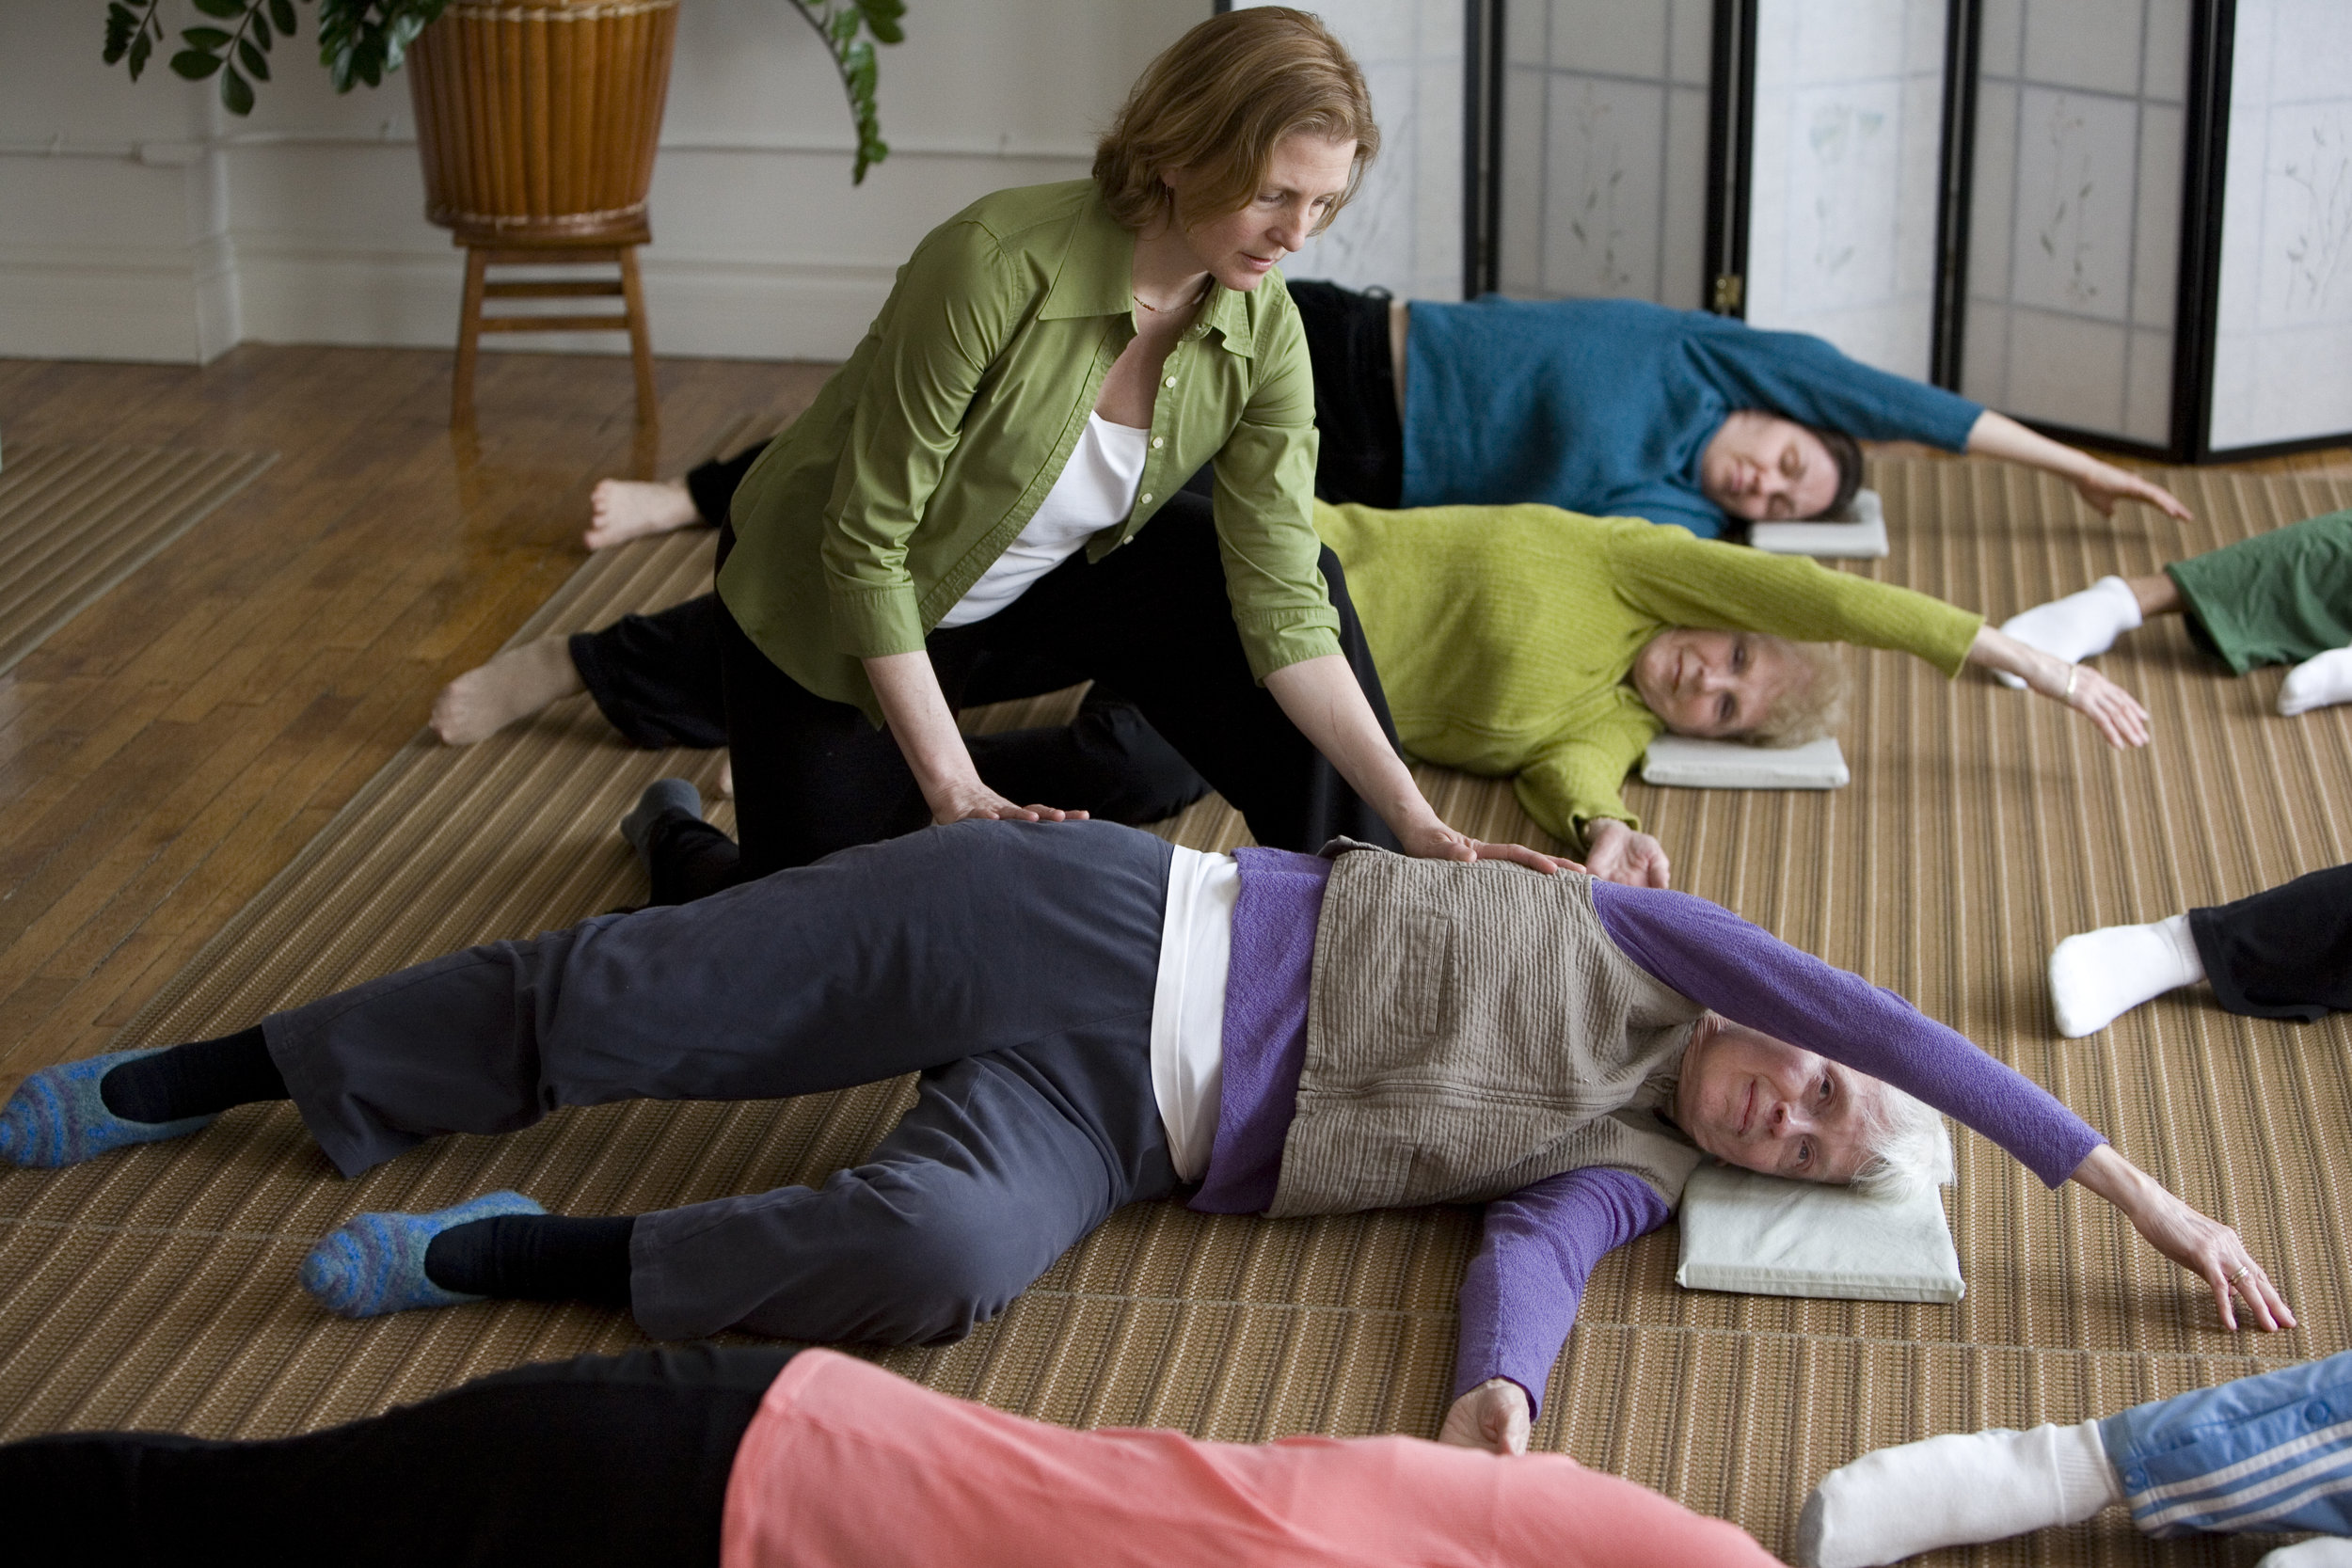 WHAT IS FELDENKRAIS?  Learn more about this movement practice with an unsual name.